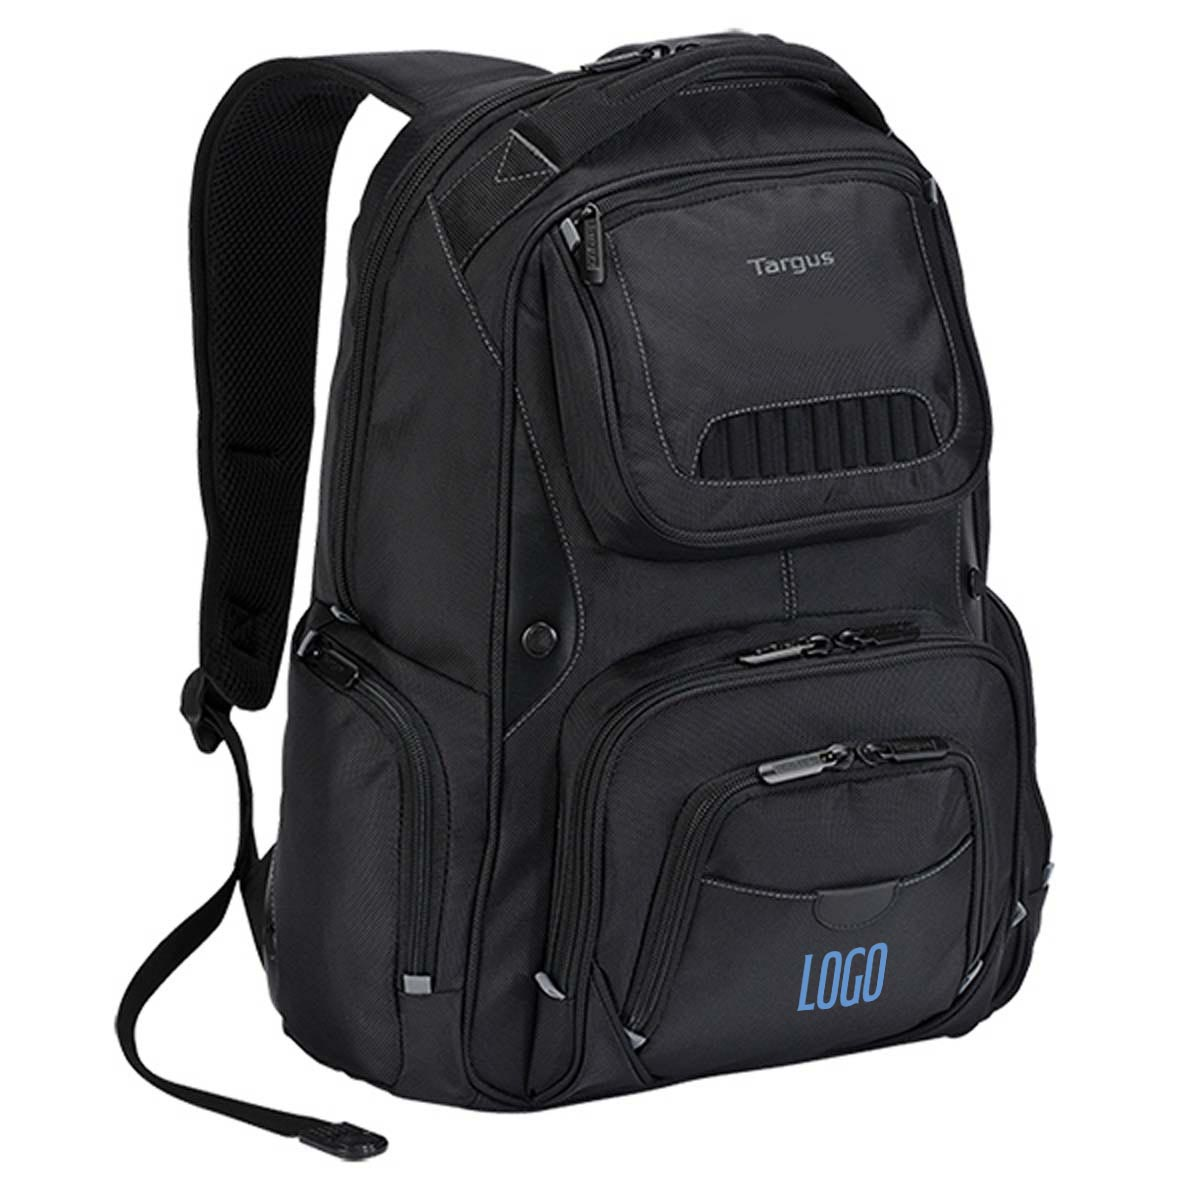 235244 infinity backpack full color imprint one location